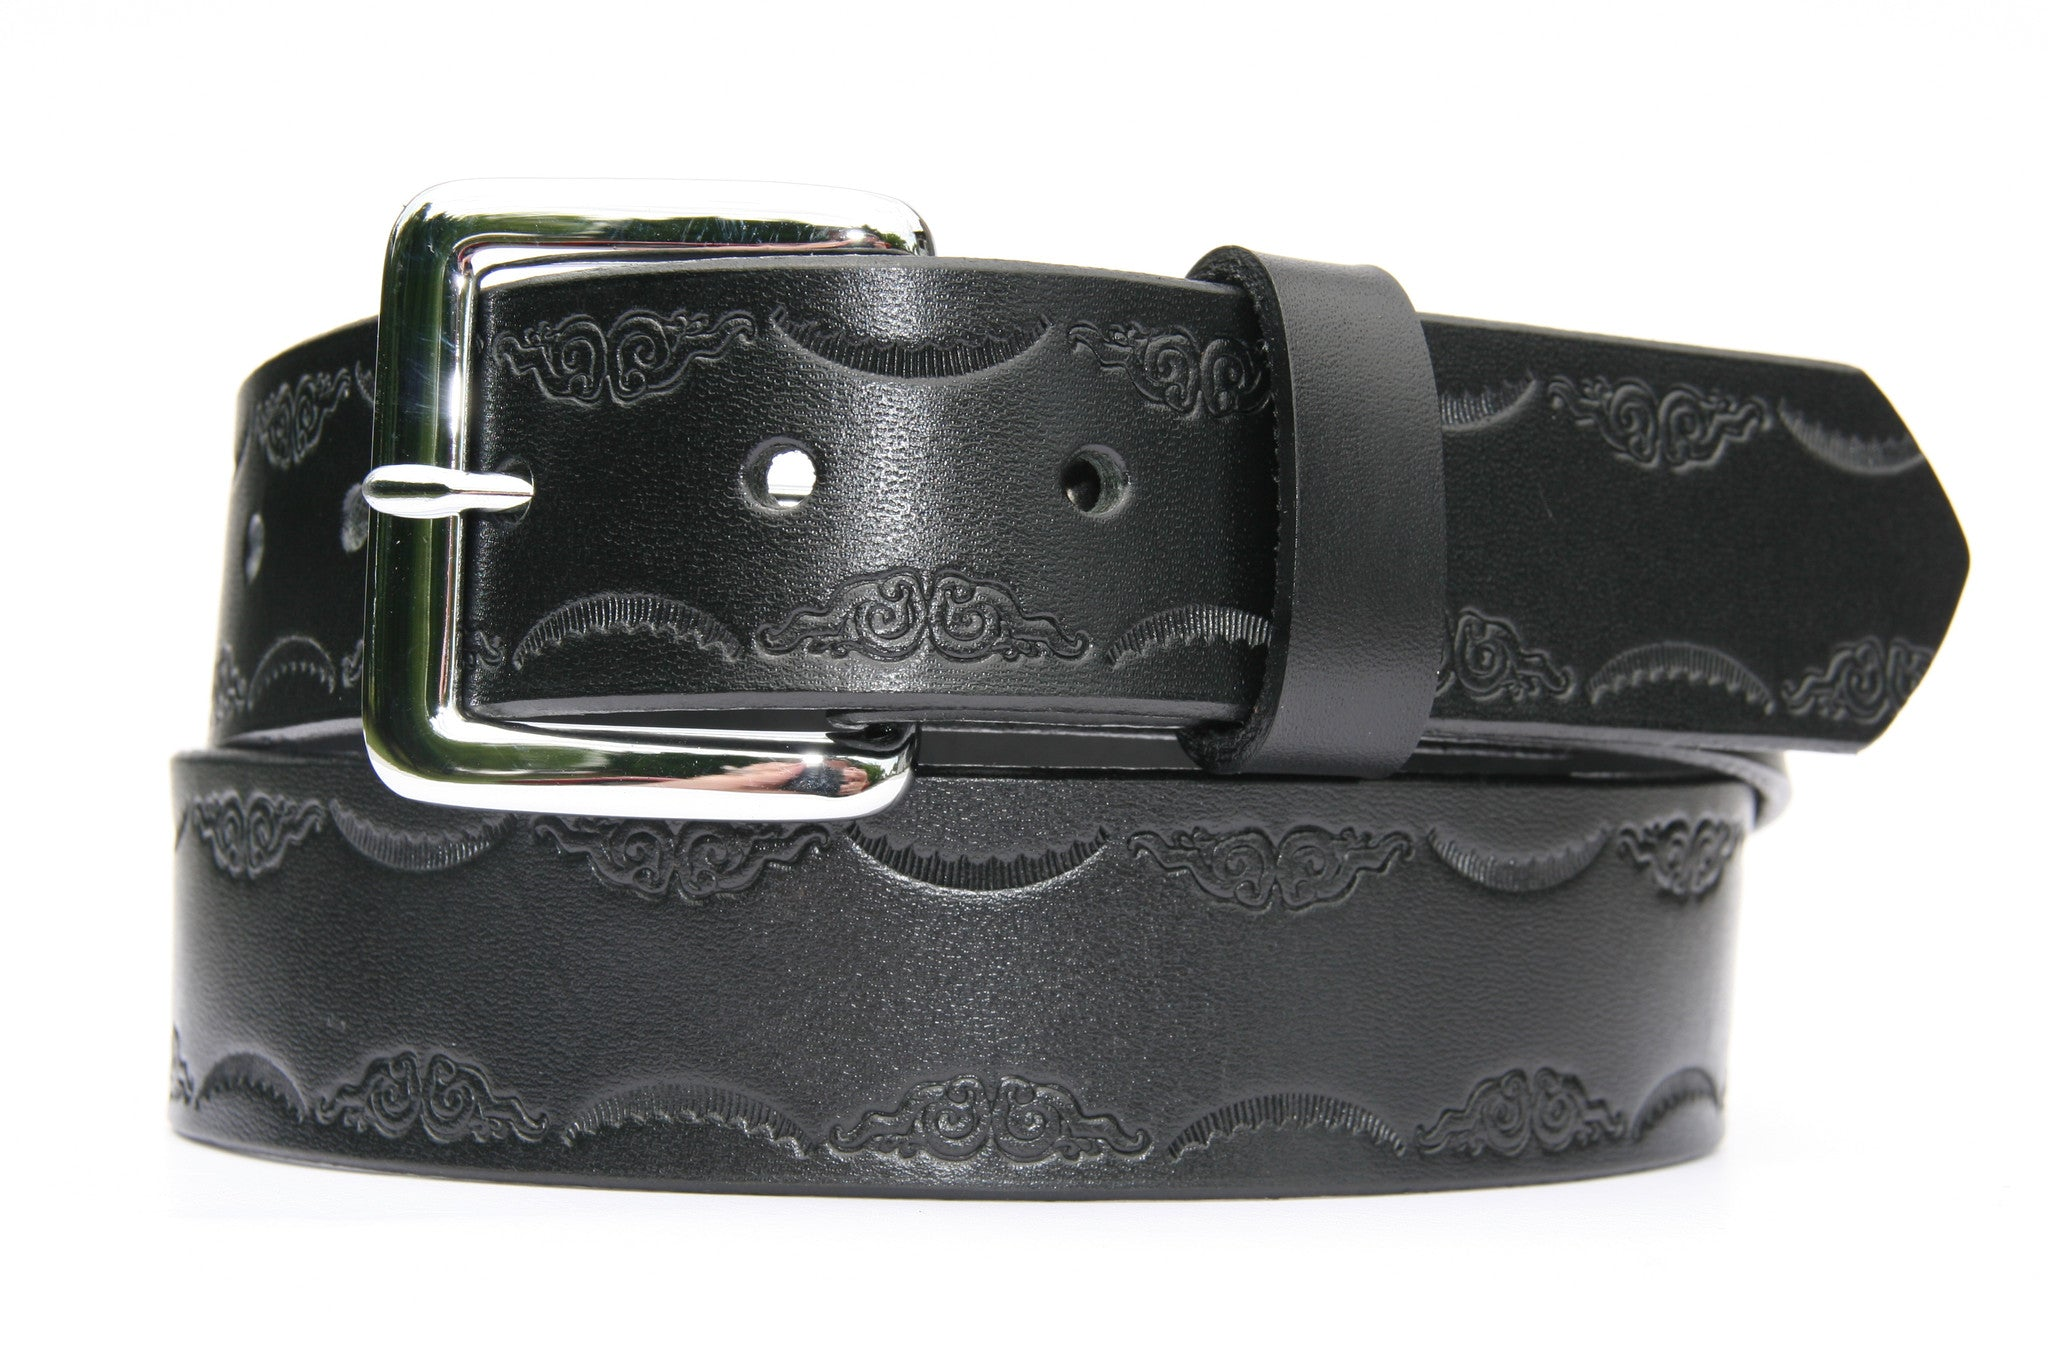 Decorative scroll edge belt